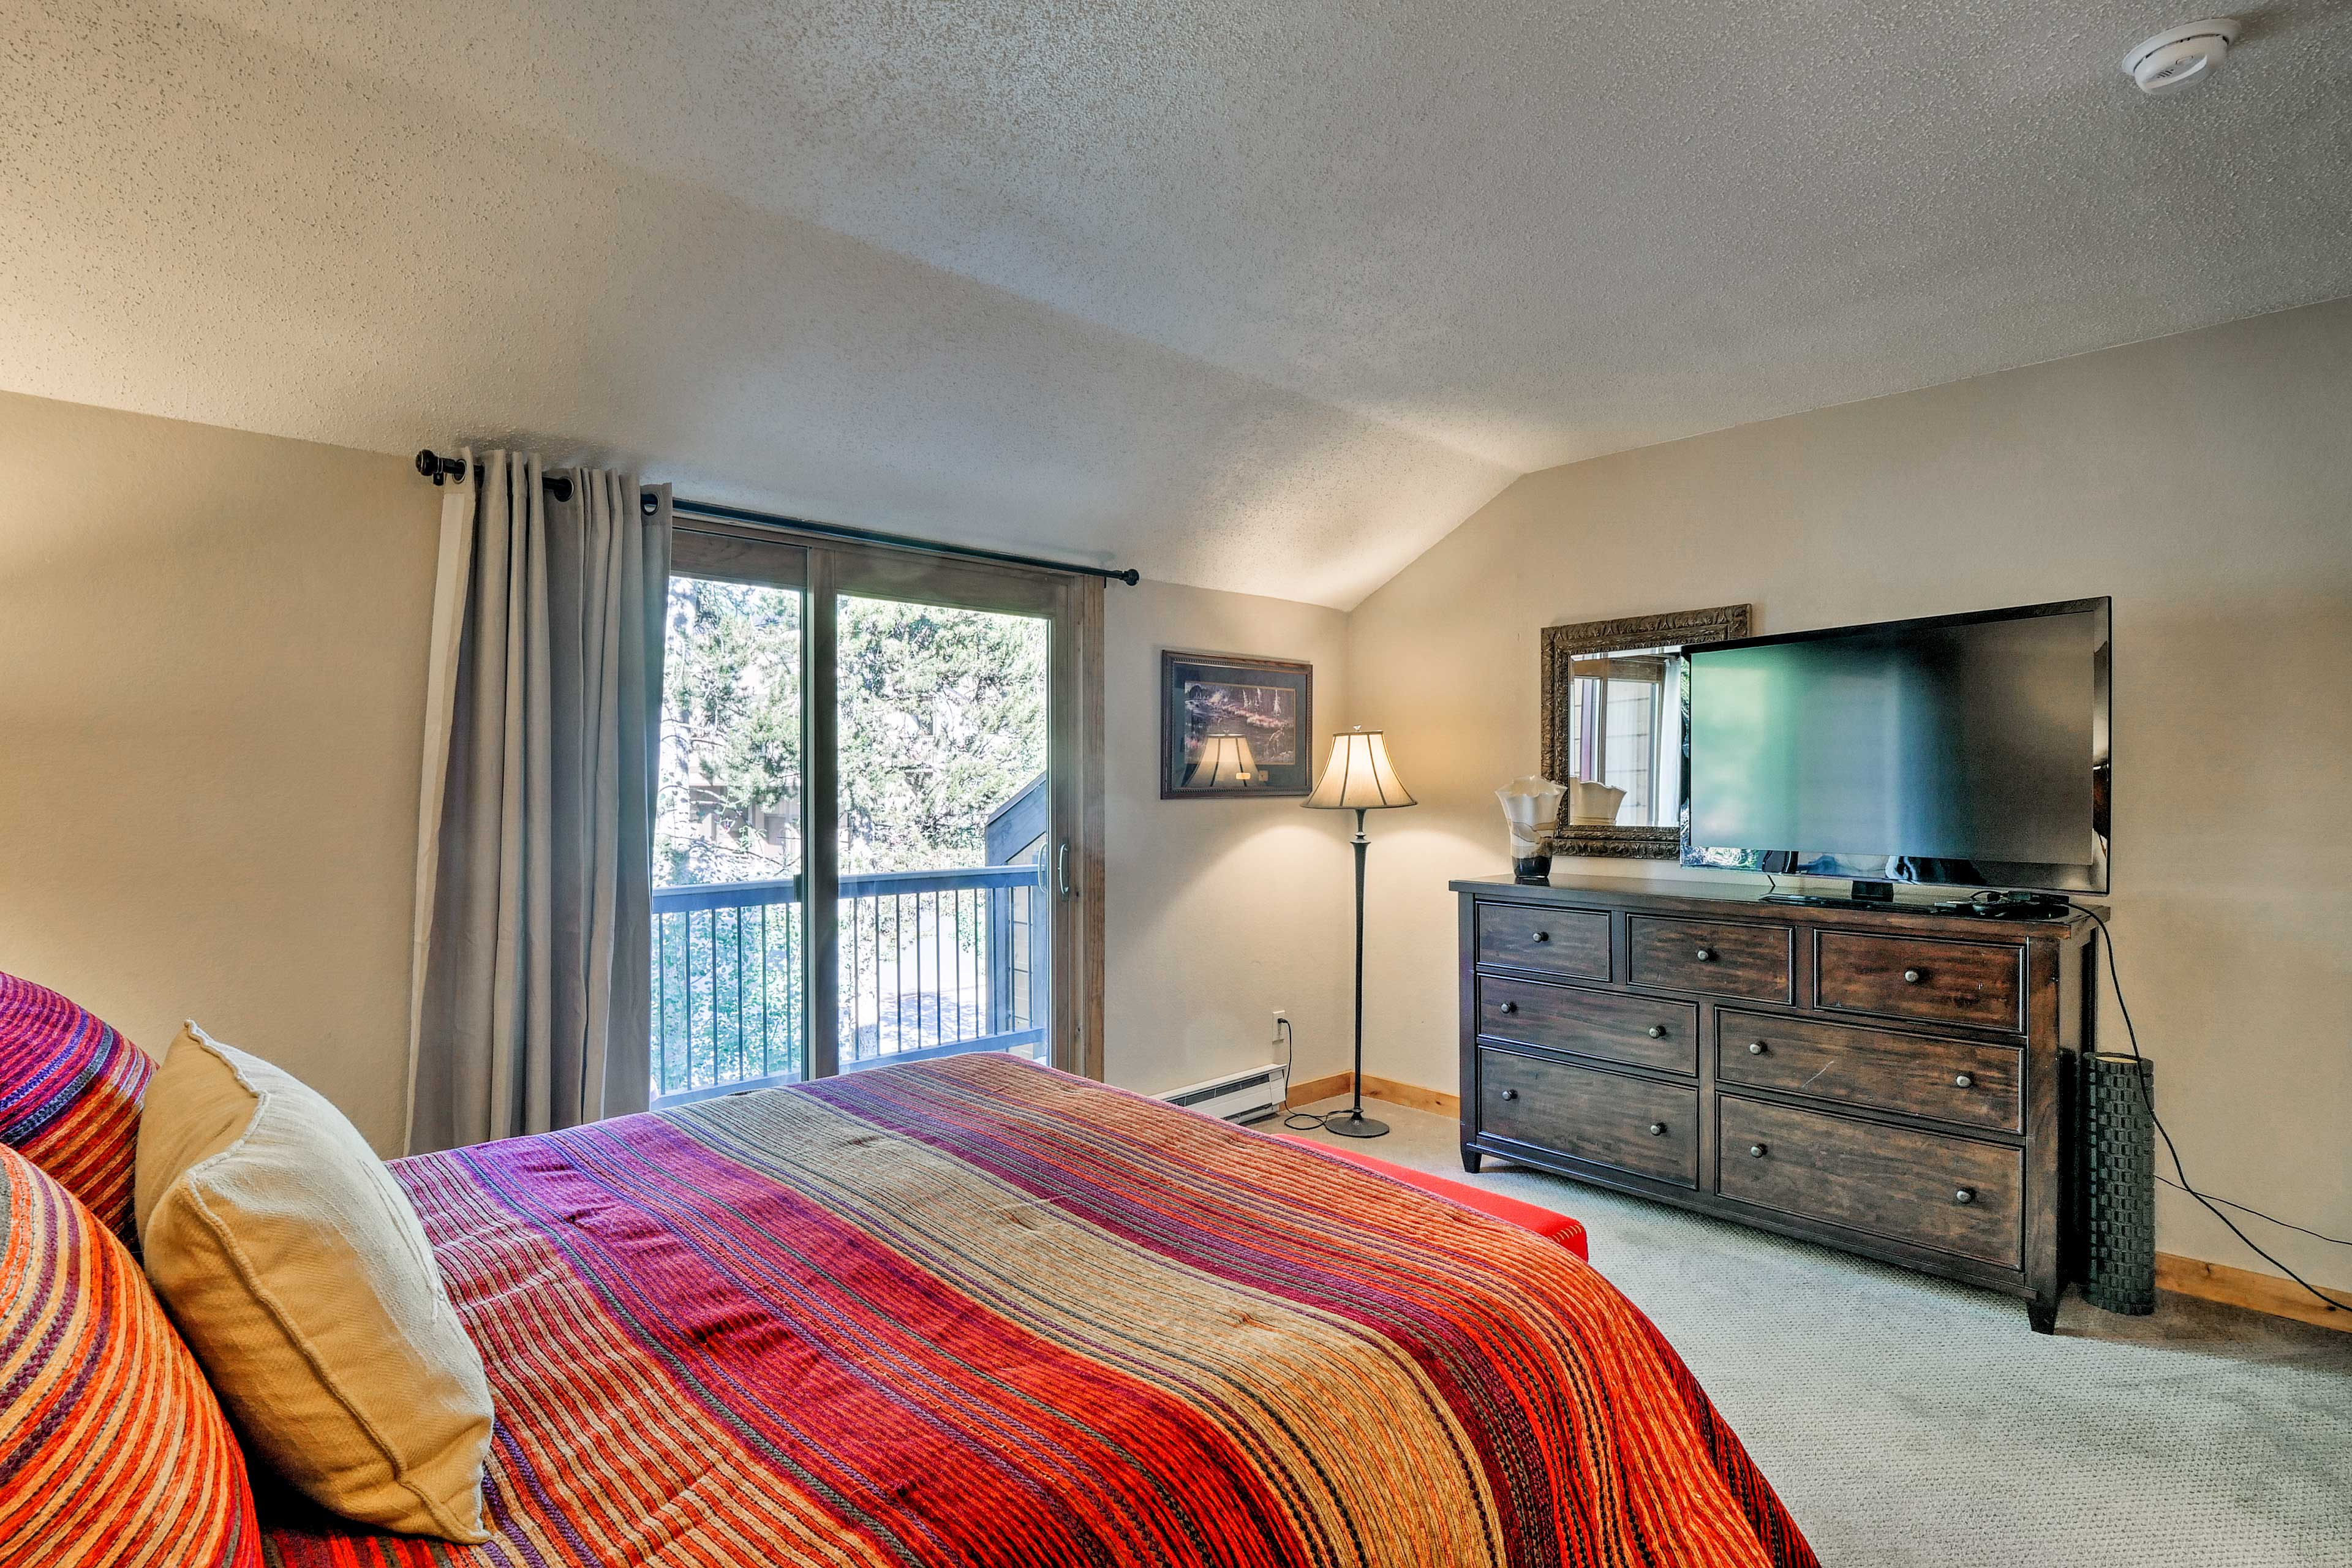 The master bedroom also features a flat-screen TV.